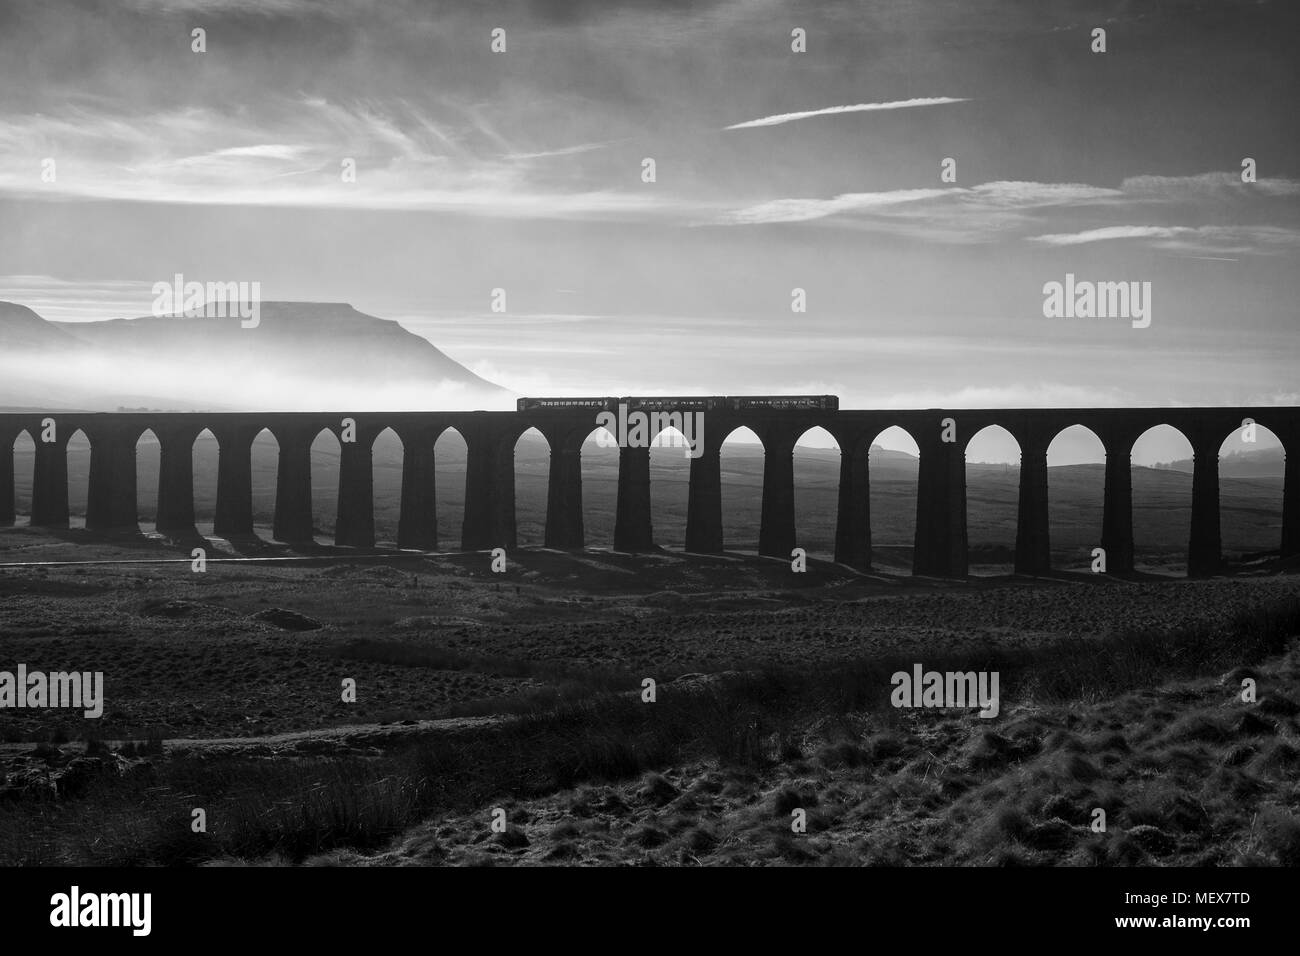 A Northern rail class 153 + 156 sprinter trains cross Ribblehead viaduct on the Settle to Carlisle railway with a misty Ingleborough behind - Stock Image